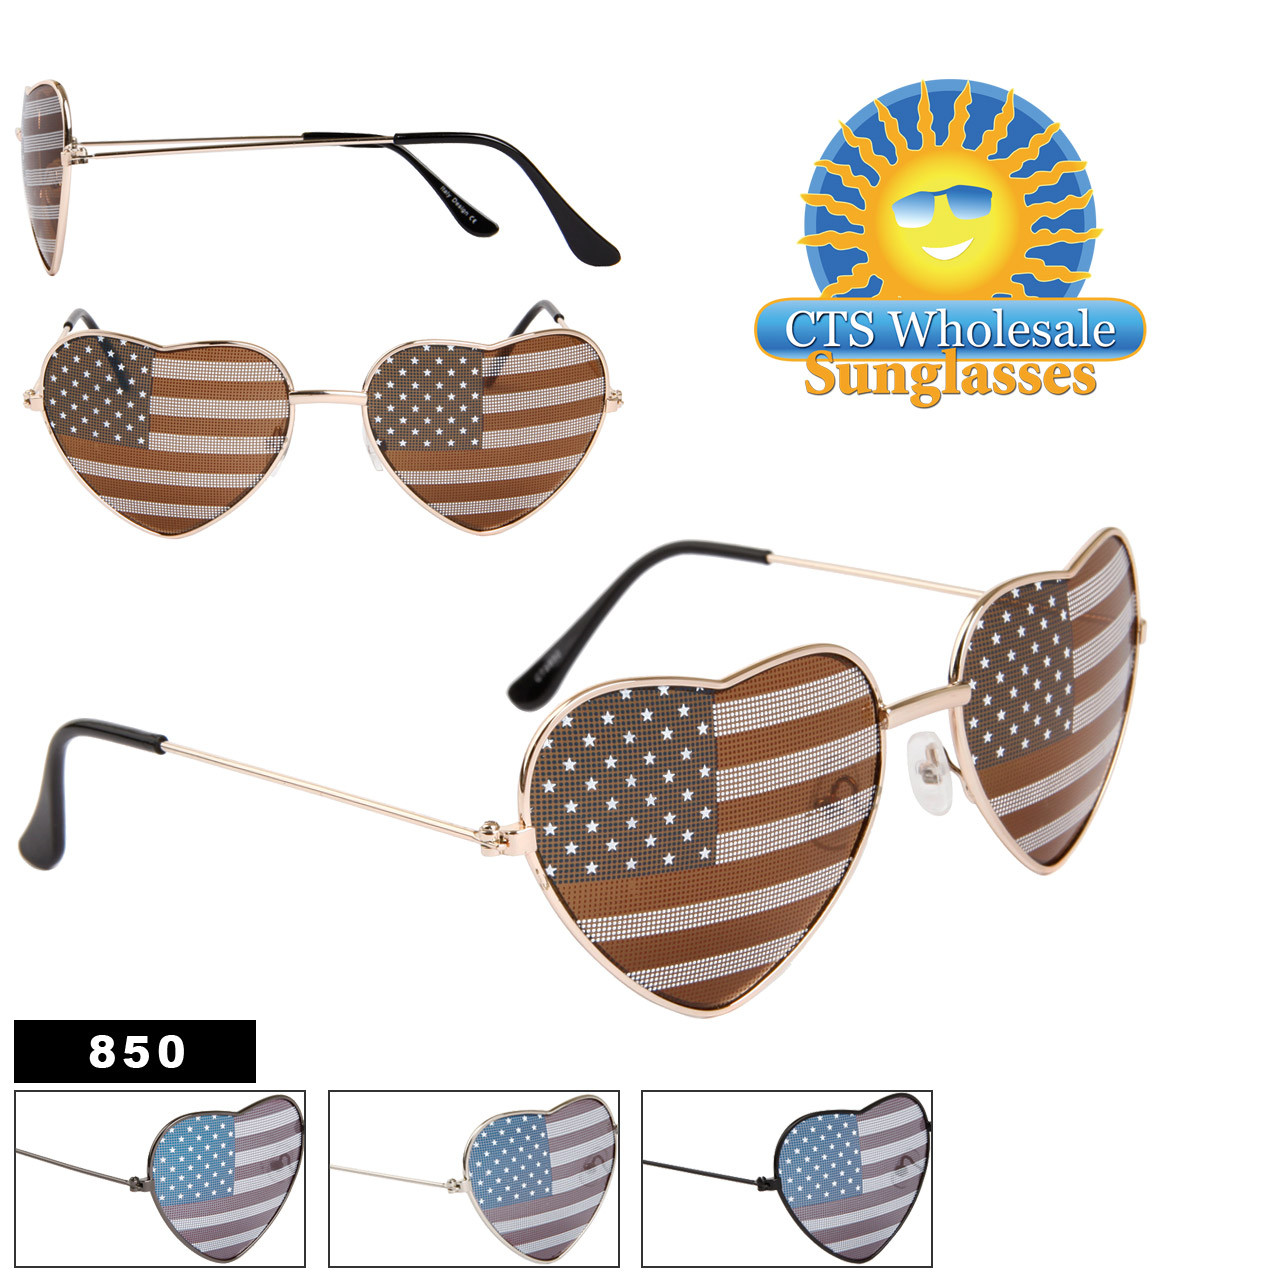 American Flag Heart Sunglasses Wholesale 850